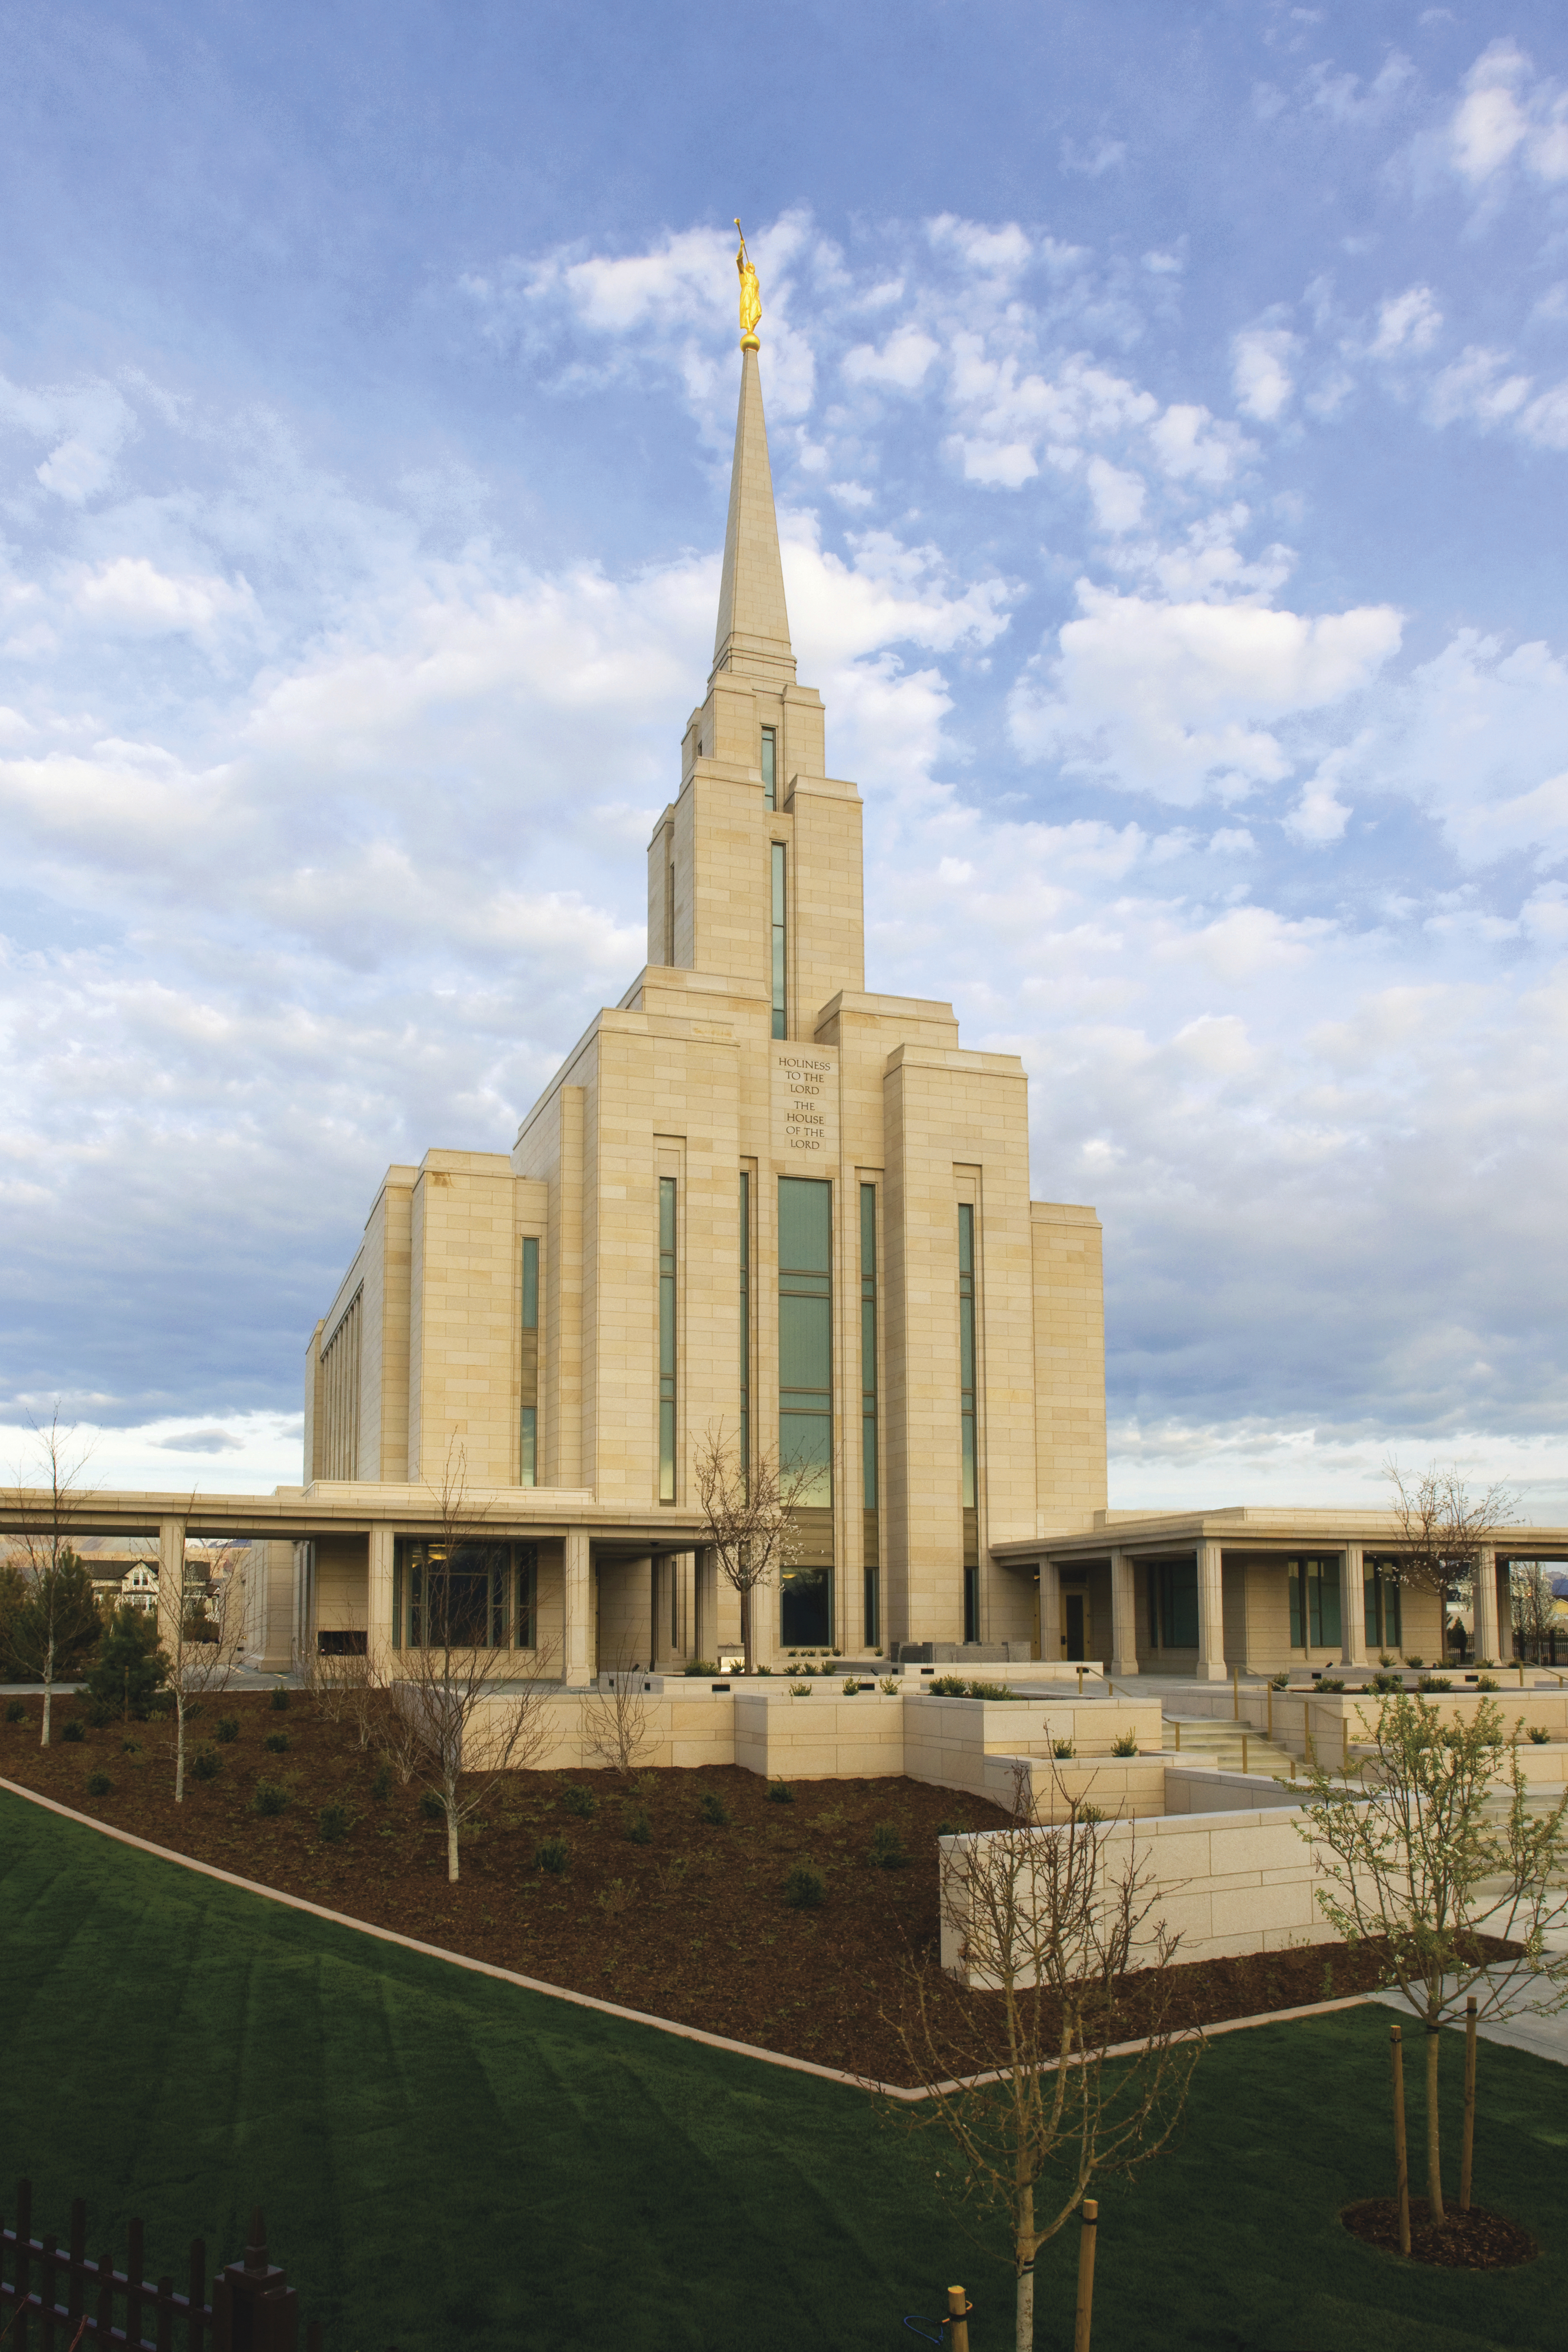 The Oquirrh Mountain Utah Temple and grounds.